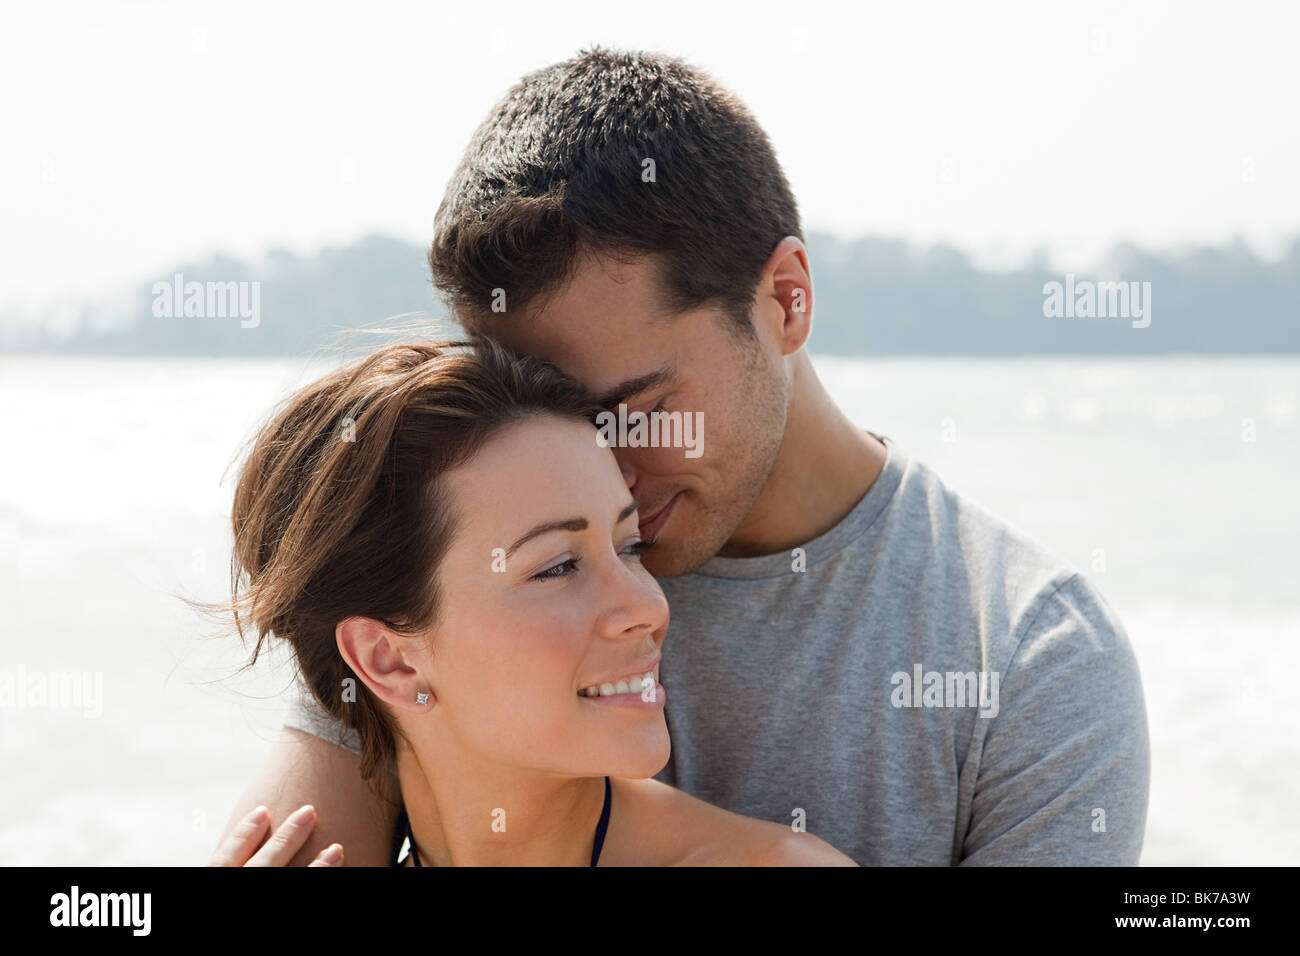 Loving couple by the sea - Stock Image